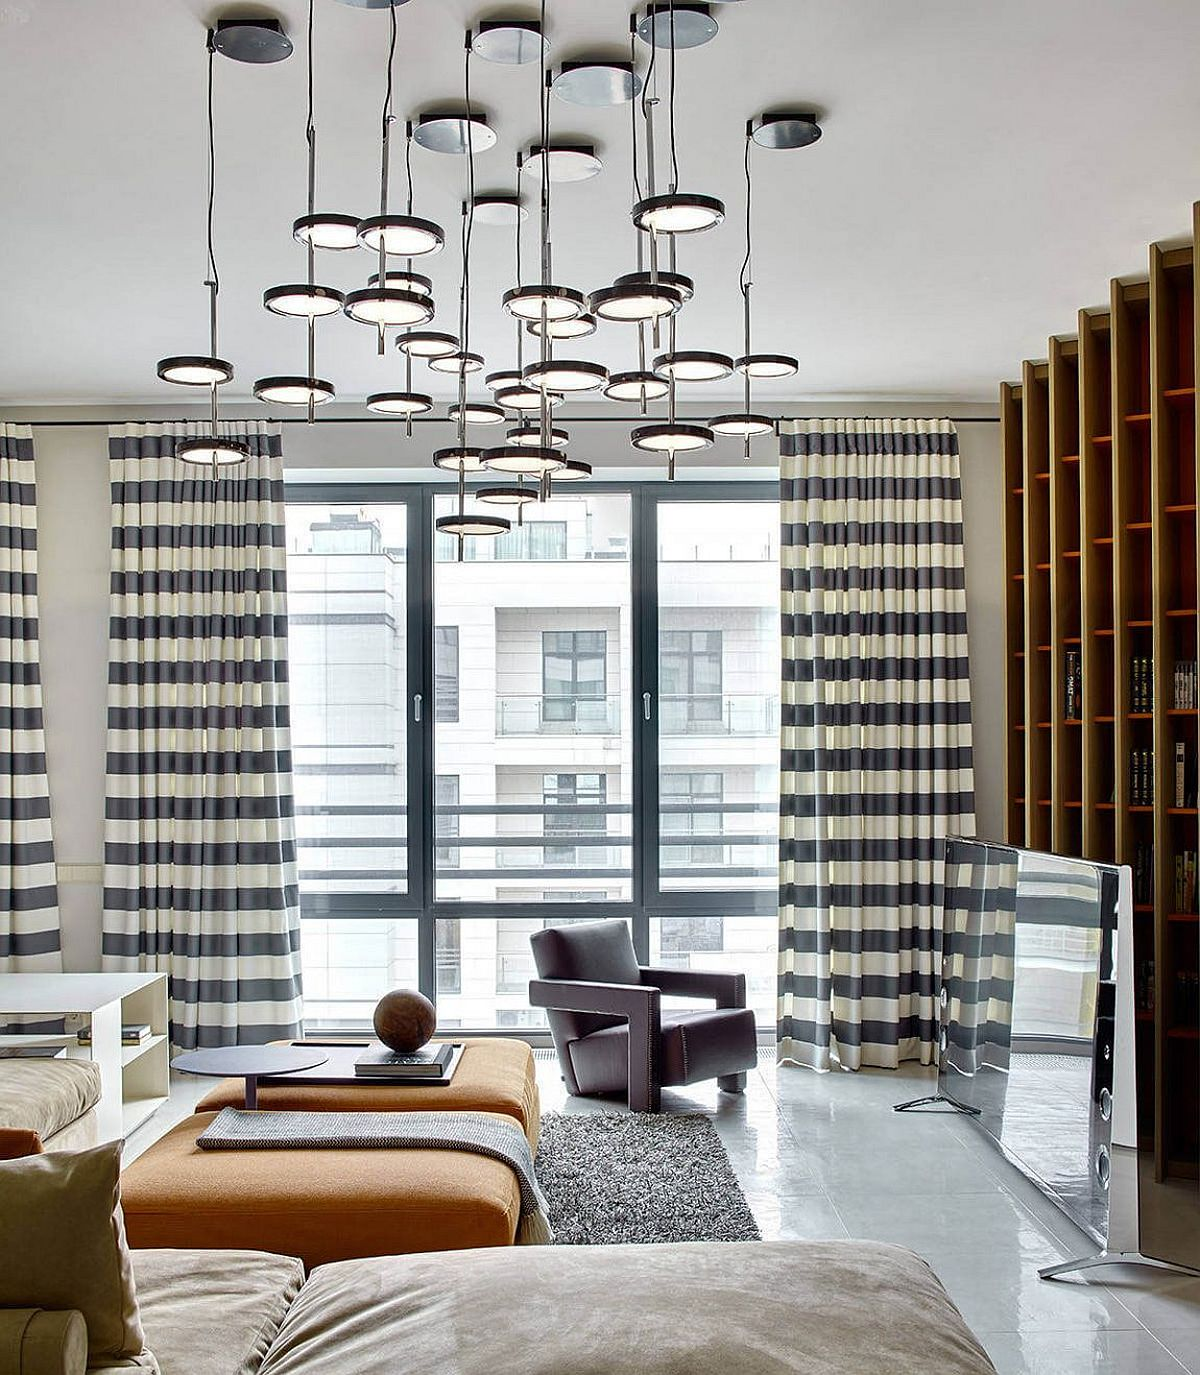 Apartment Rentals San Francisco Russian Hill: Black, White And Geometric Delight: Urbane Apartment In Moscow